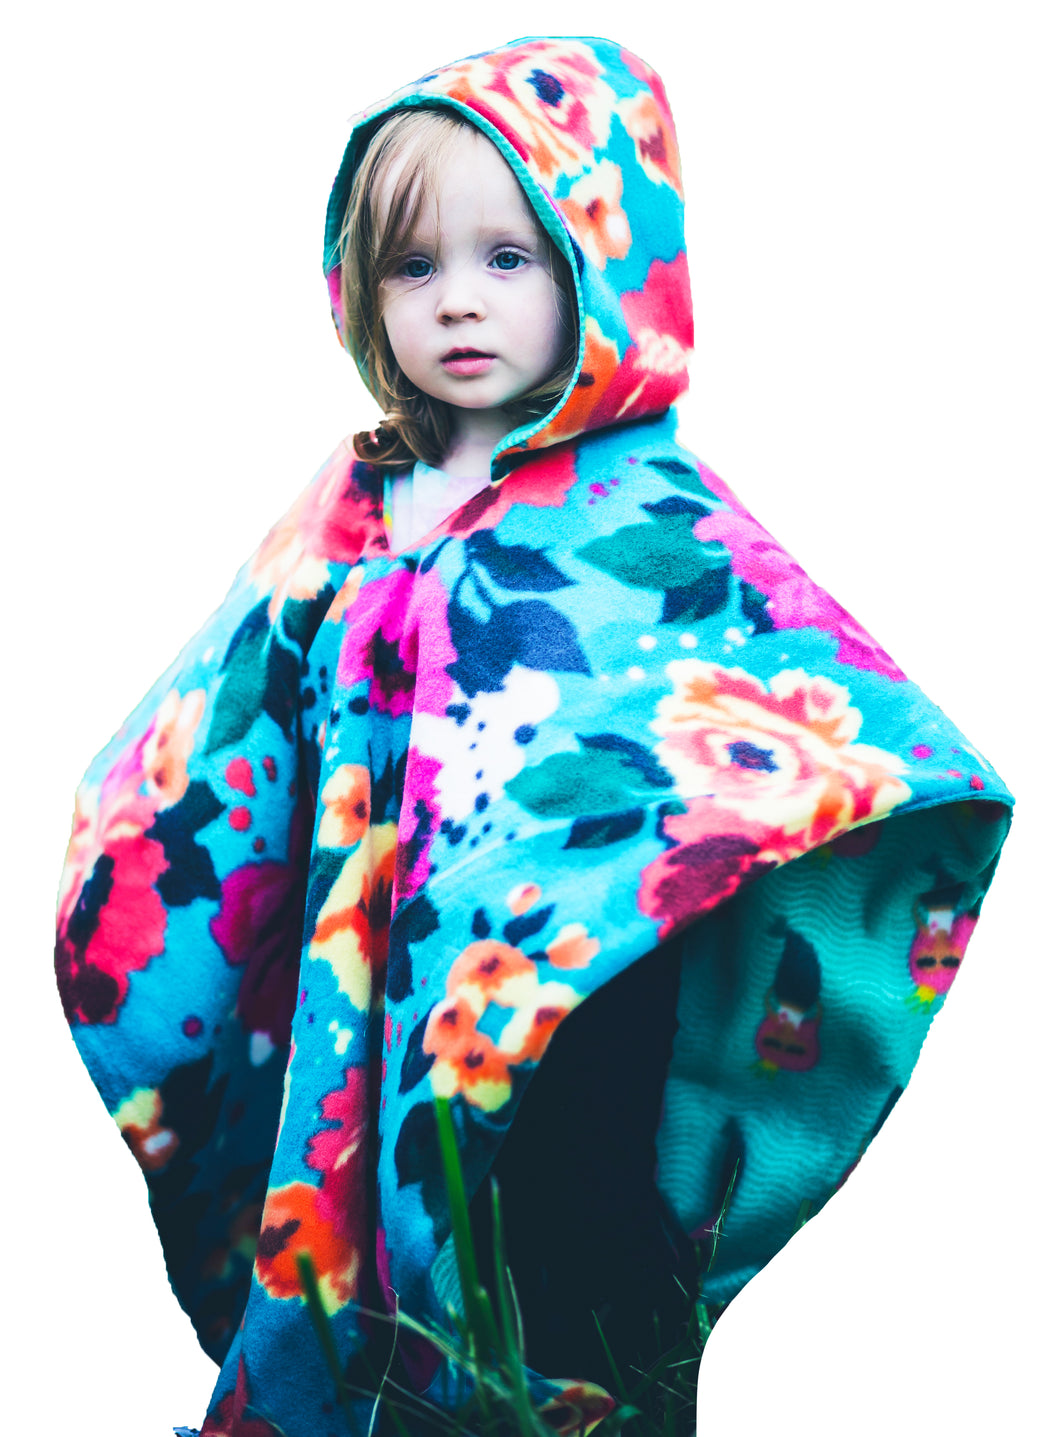 Car Seat Poncho - Car Crash Tested and CPSC Compliant - Florals & Mermaids